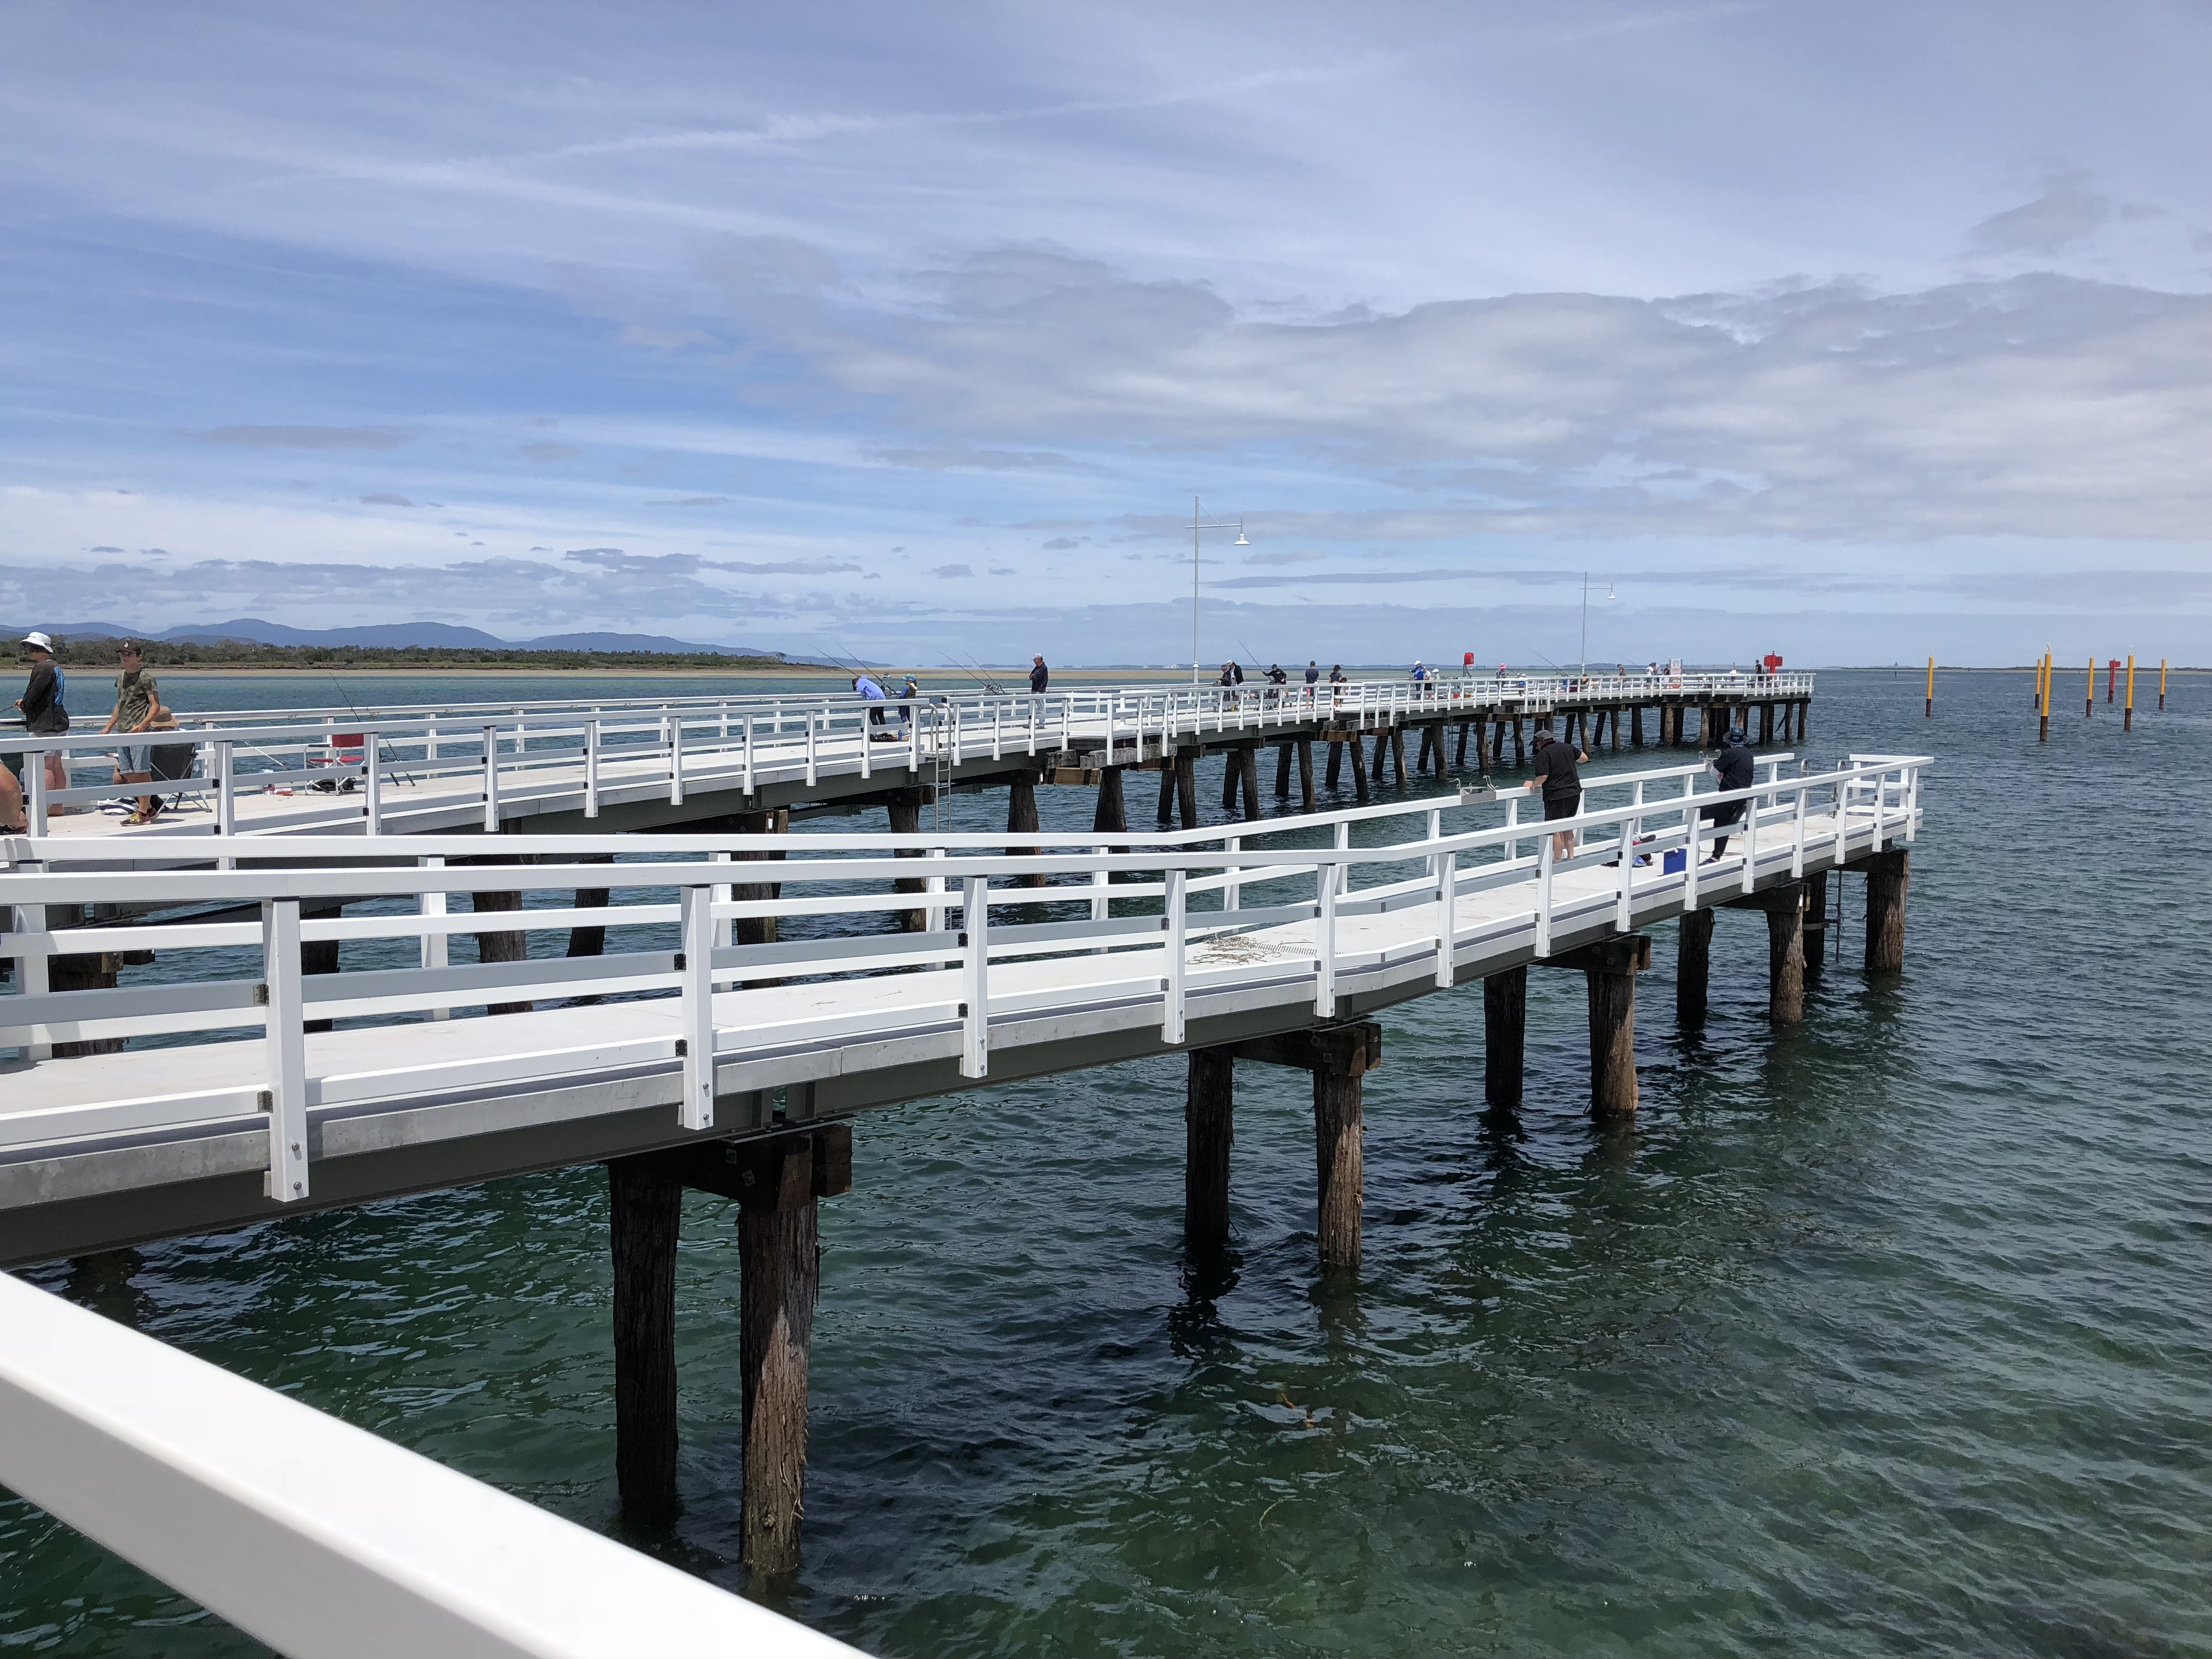 Many visitors have flocked to the newly refurbished Long Jetty